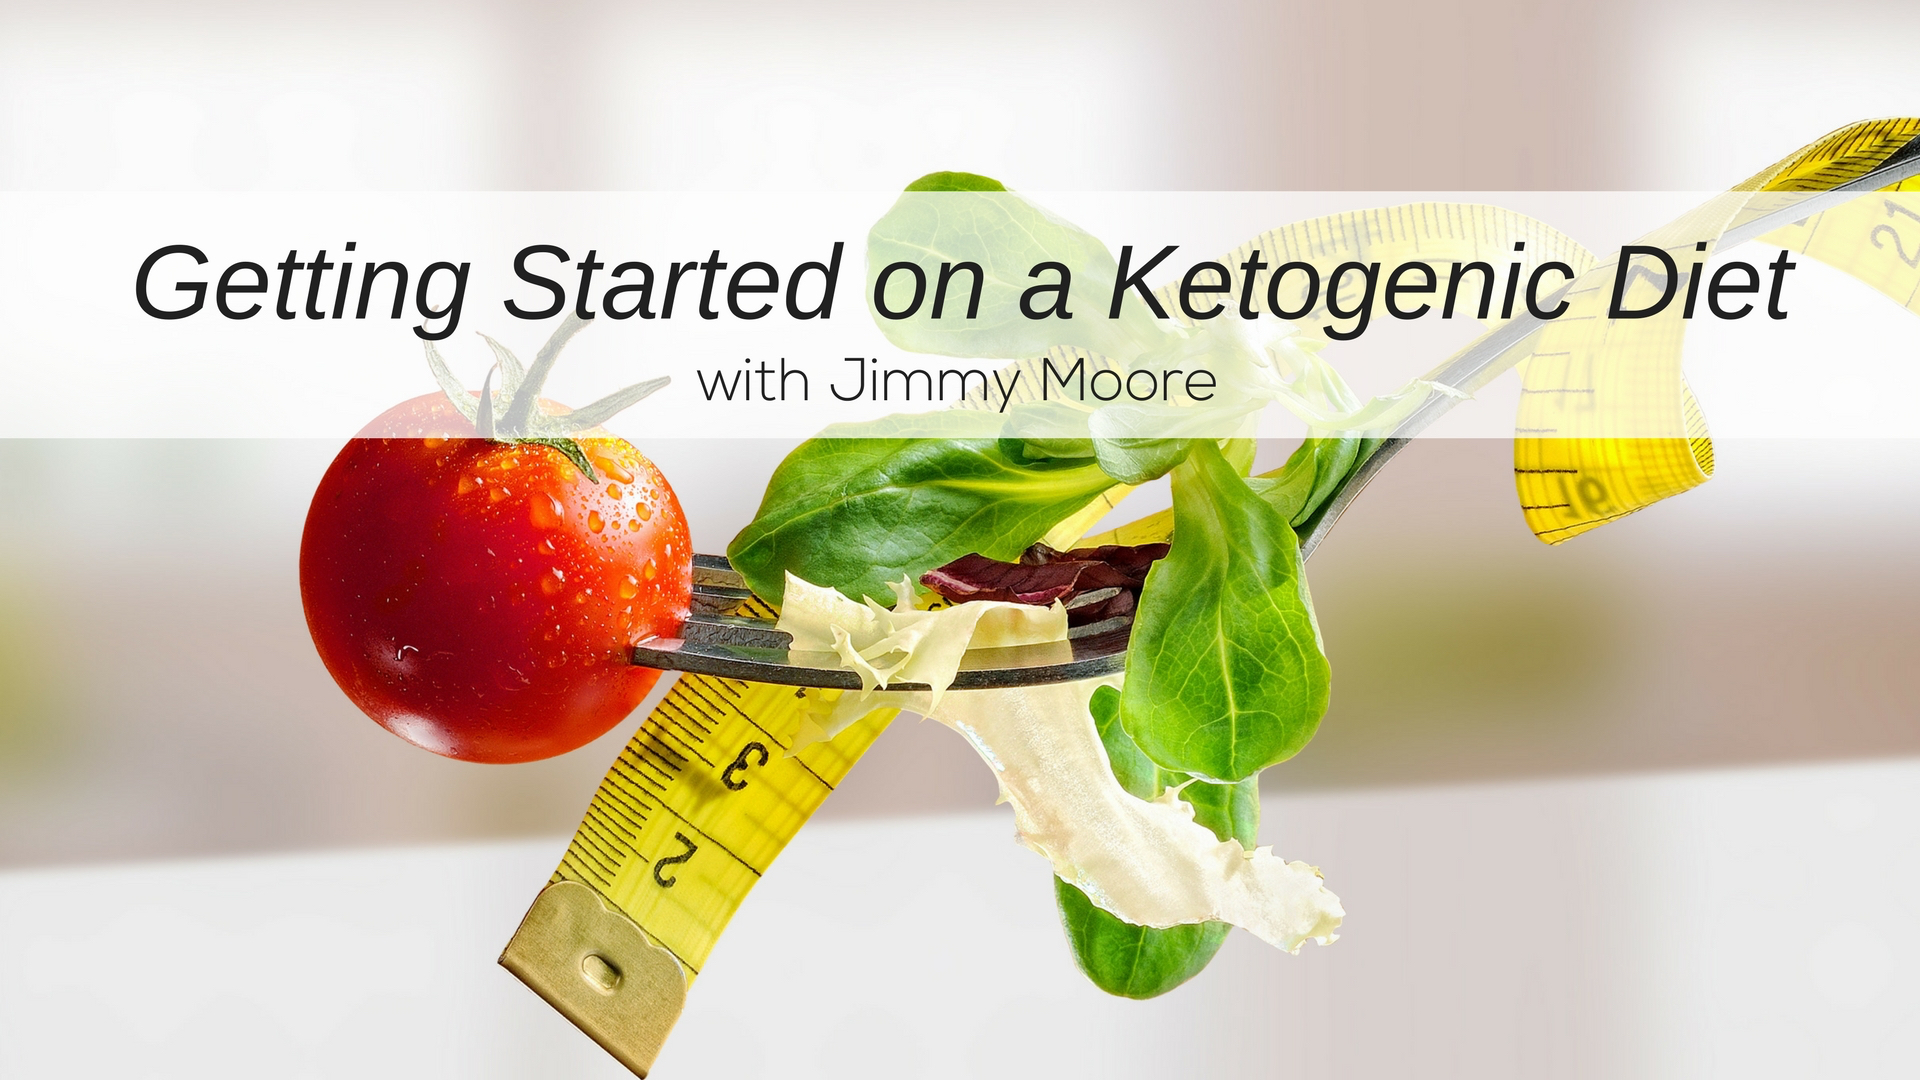 Getting Started on a Ketogenic Diet with Jimmy Moore